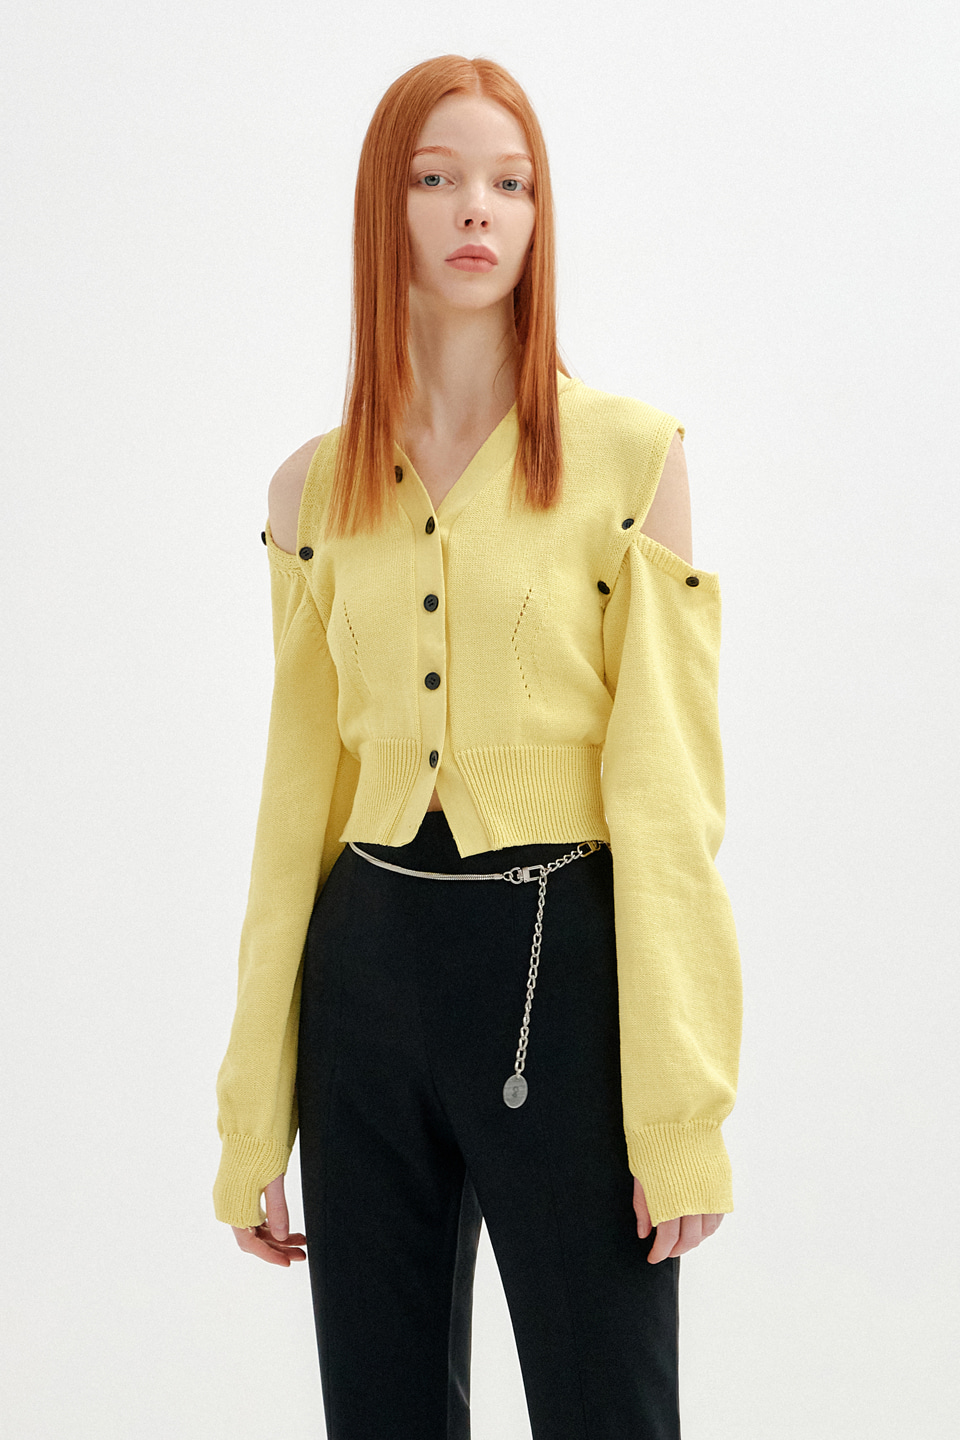 (재입고) UNBALANCE SHOULDER CUT CROP KNIT CARDIGAN - LIGHT YELLOW (4/27일 예약배송)